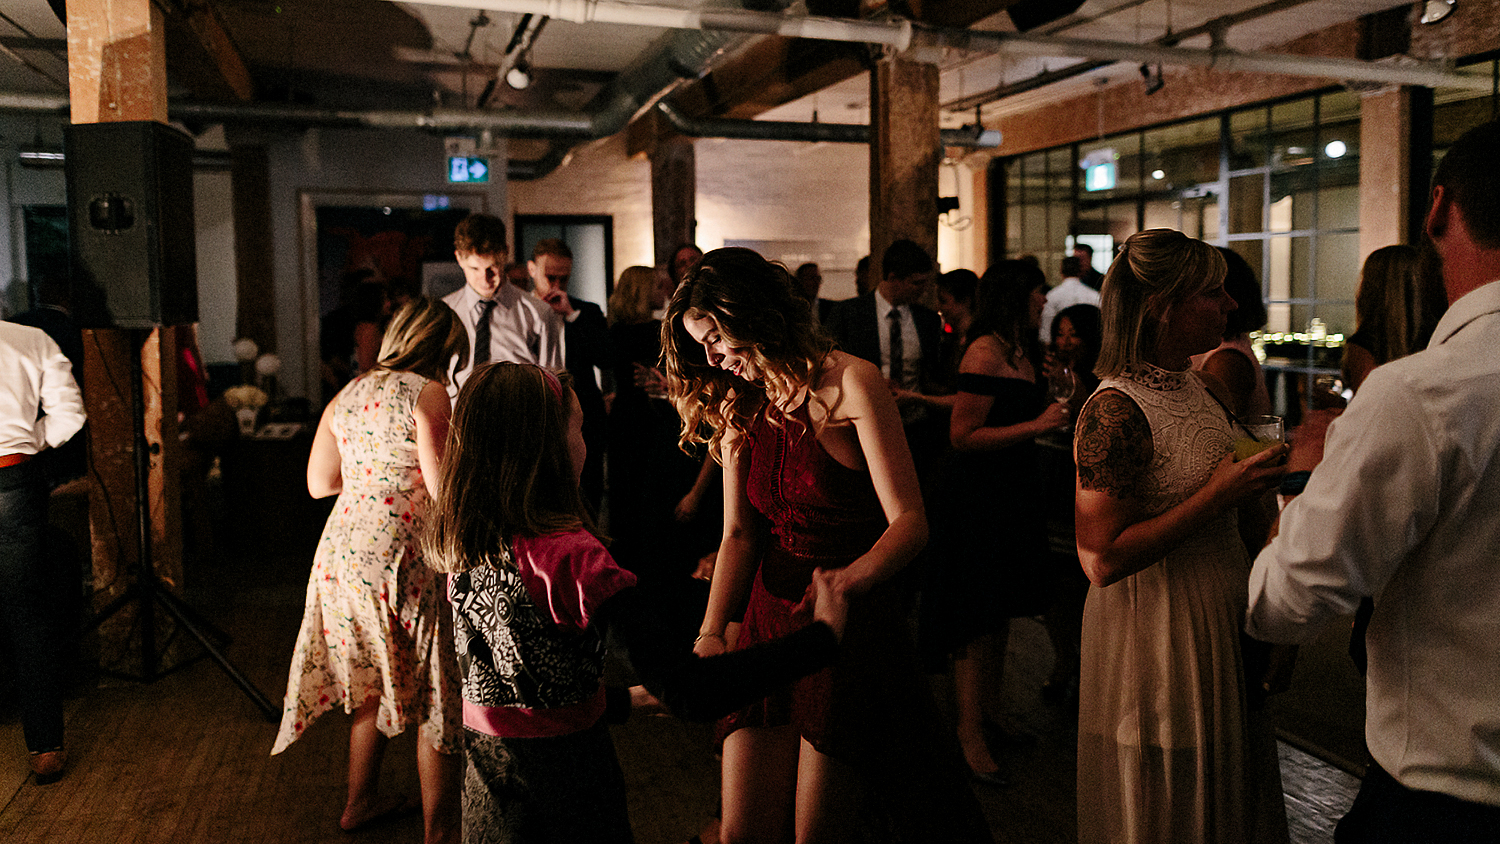 East-Room-Wedding-Queen-Street-East-Toronto-Intimate-Industrial-Wedding-Venue-Reception-Details-Grand-Electric-Food-Truck-Catering-candid-moments-wedding-photography-candid-dance-party-22.jpg